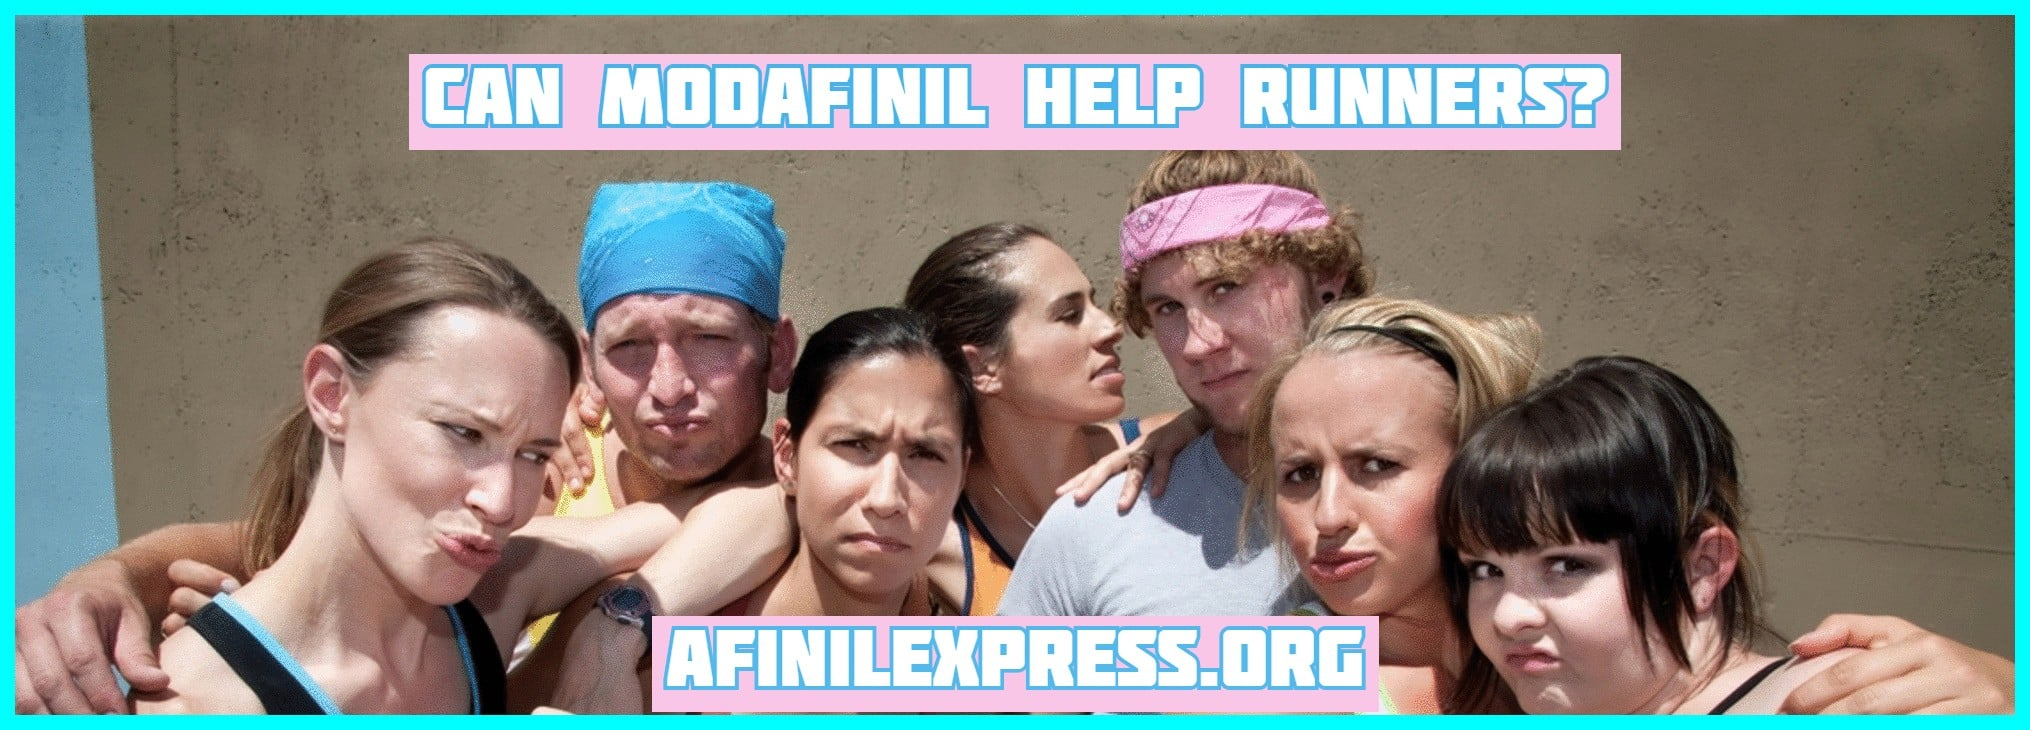 Can Modafinil Help Runners?